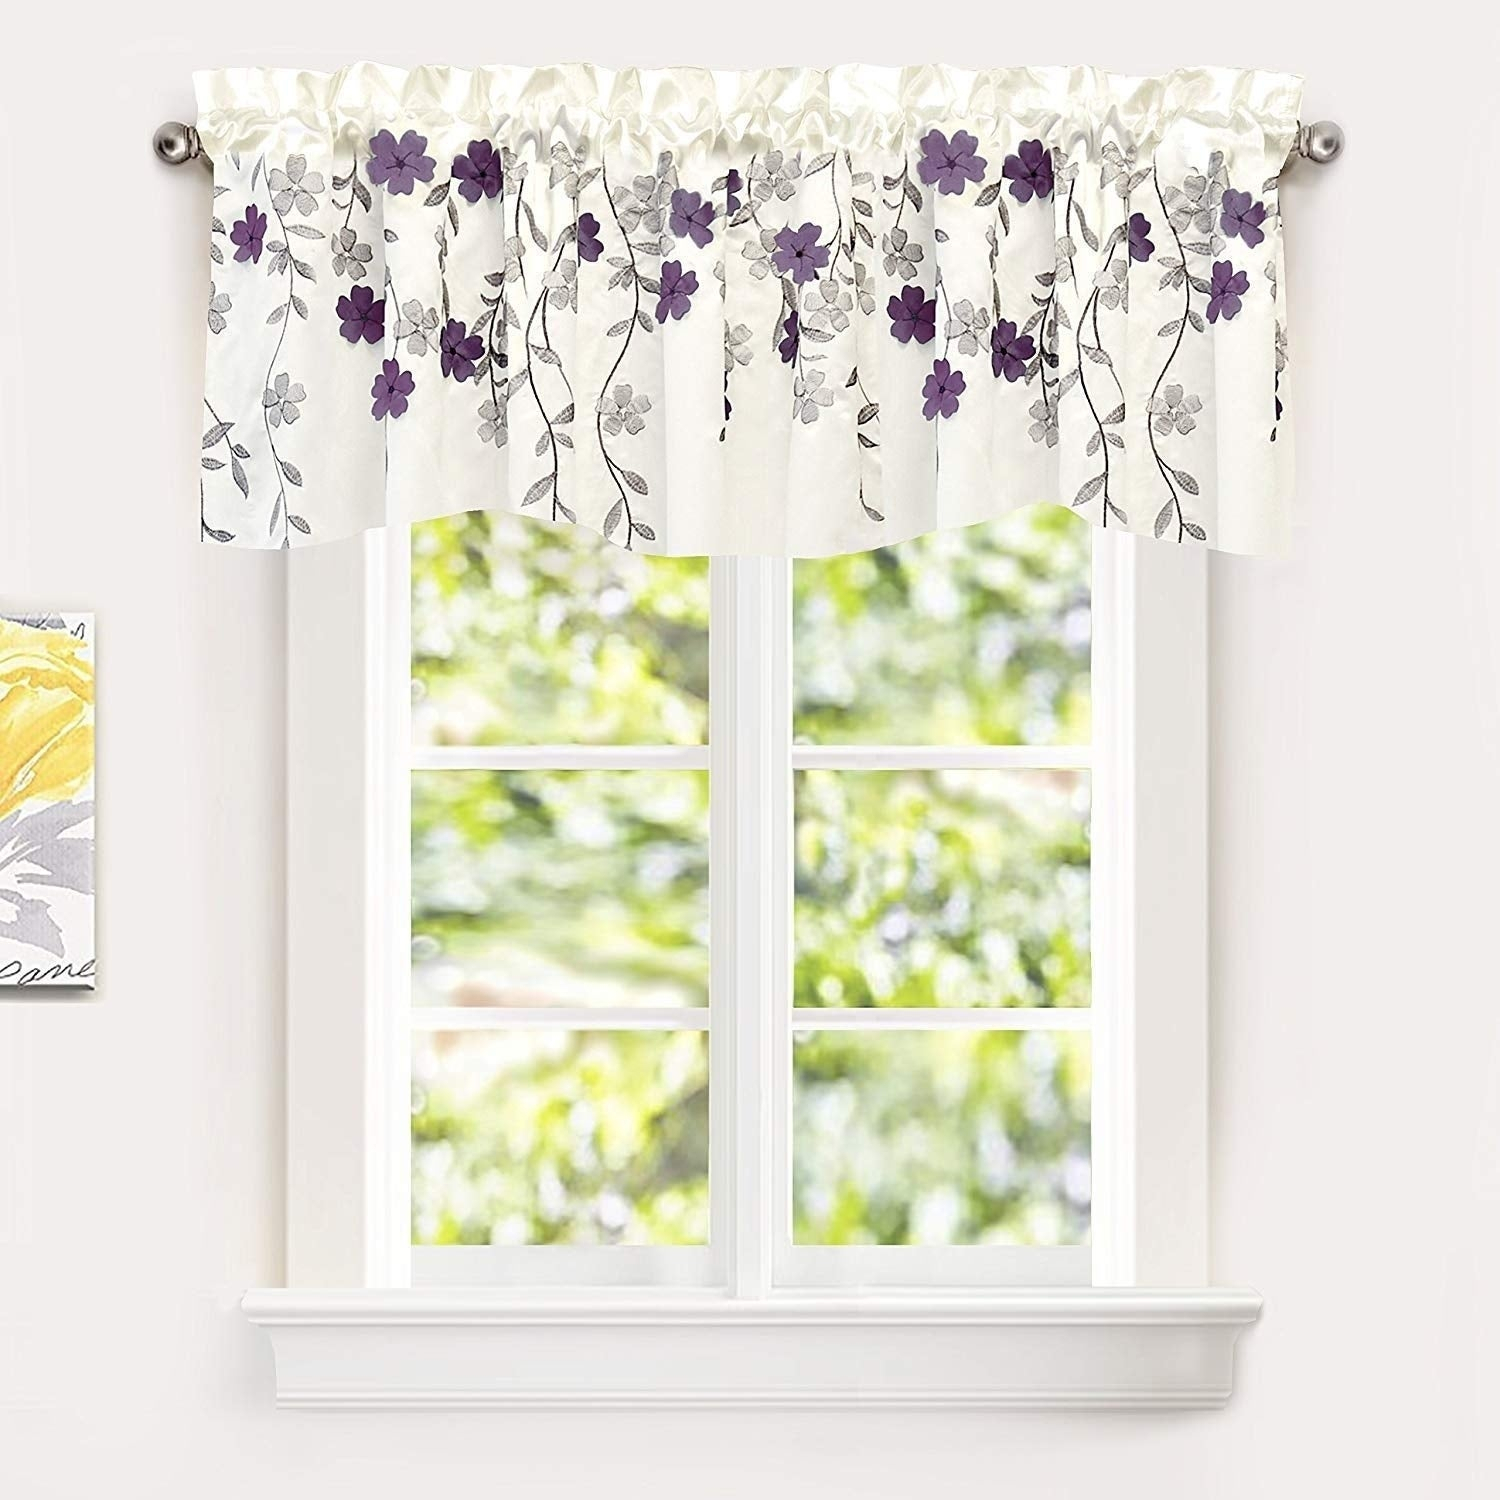 Driftaway Isabella Faux Silk Embroidered Crafted Flower Kitchen Swag Valance Regarding Floral Embroidered Faux Silk Kitchen Tiers (View 5 of 20)